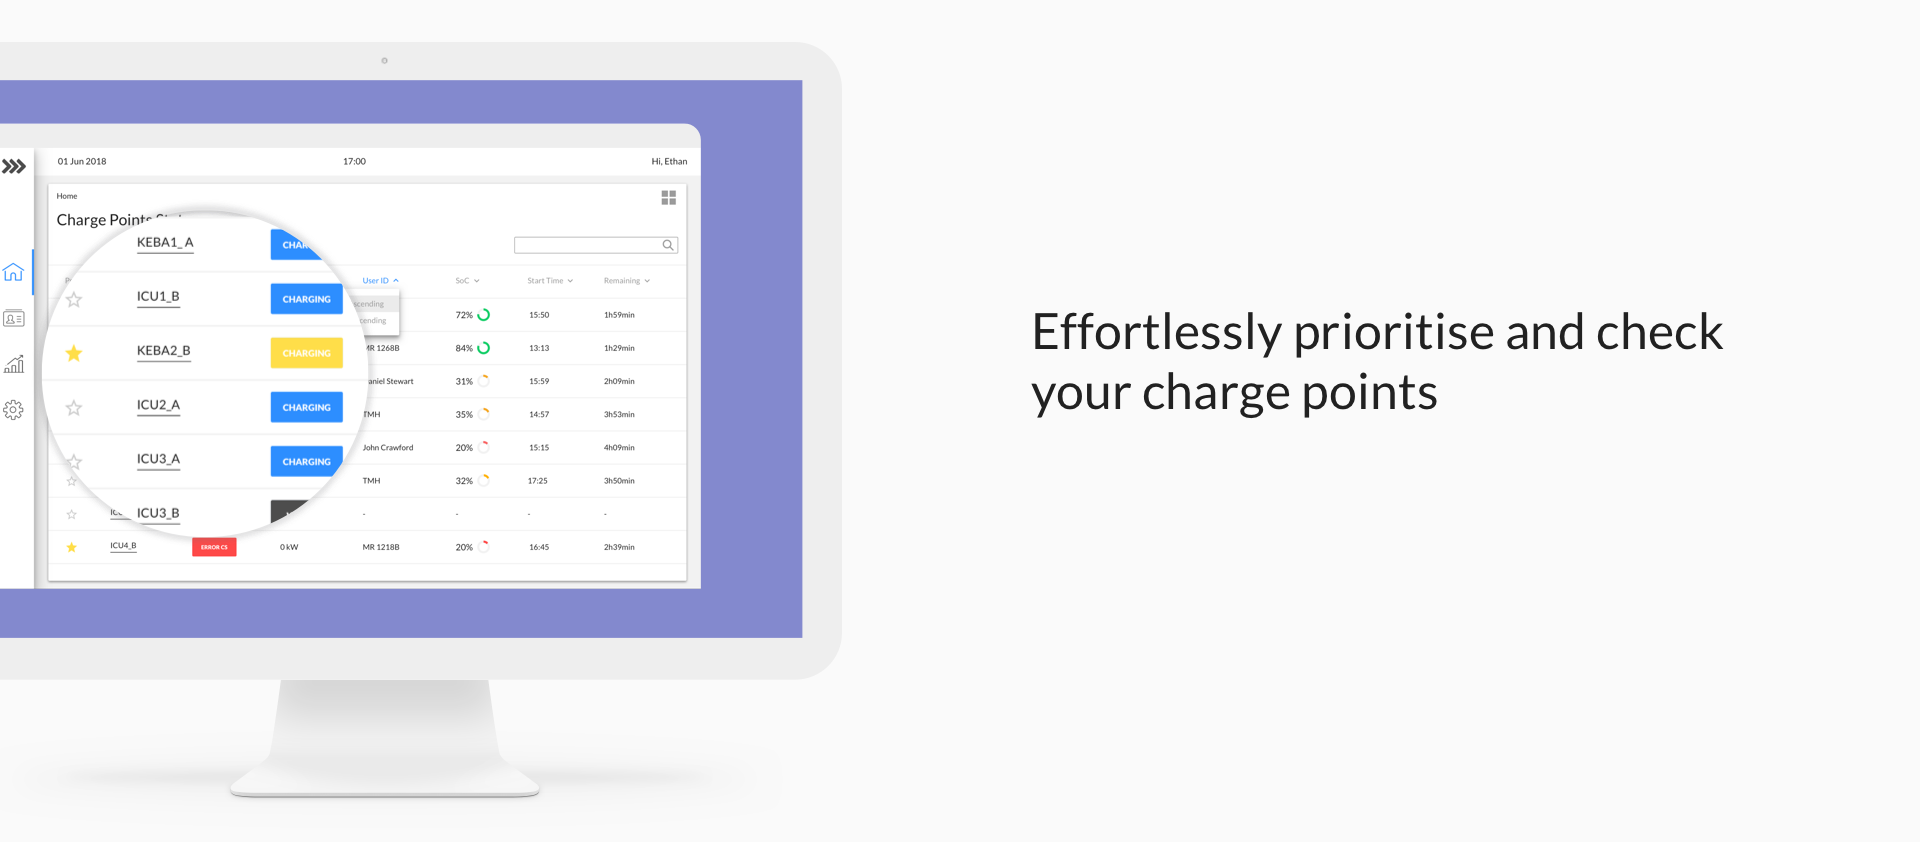 Effortlessly prioritise you charge points